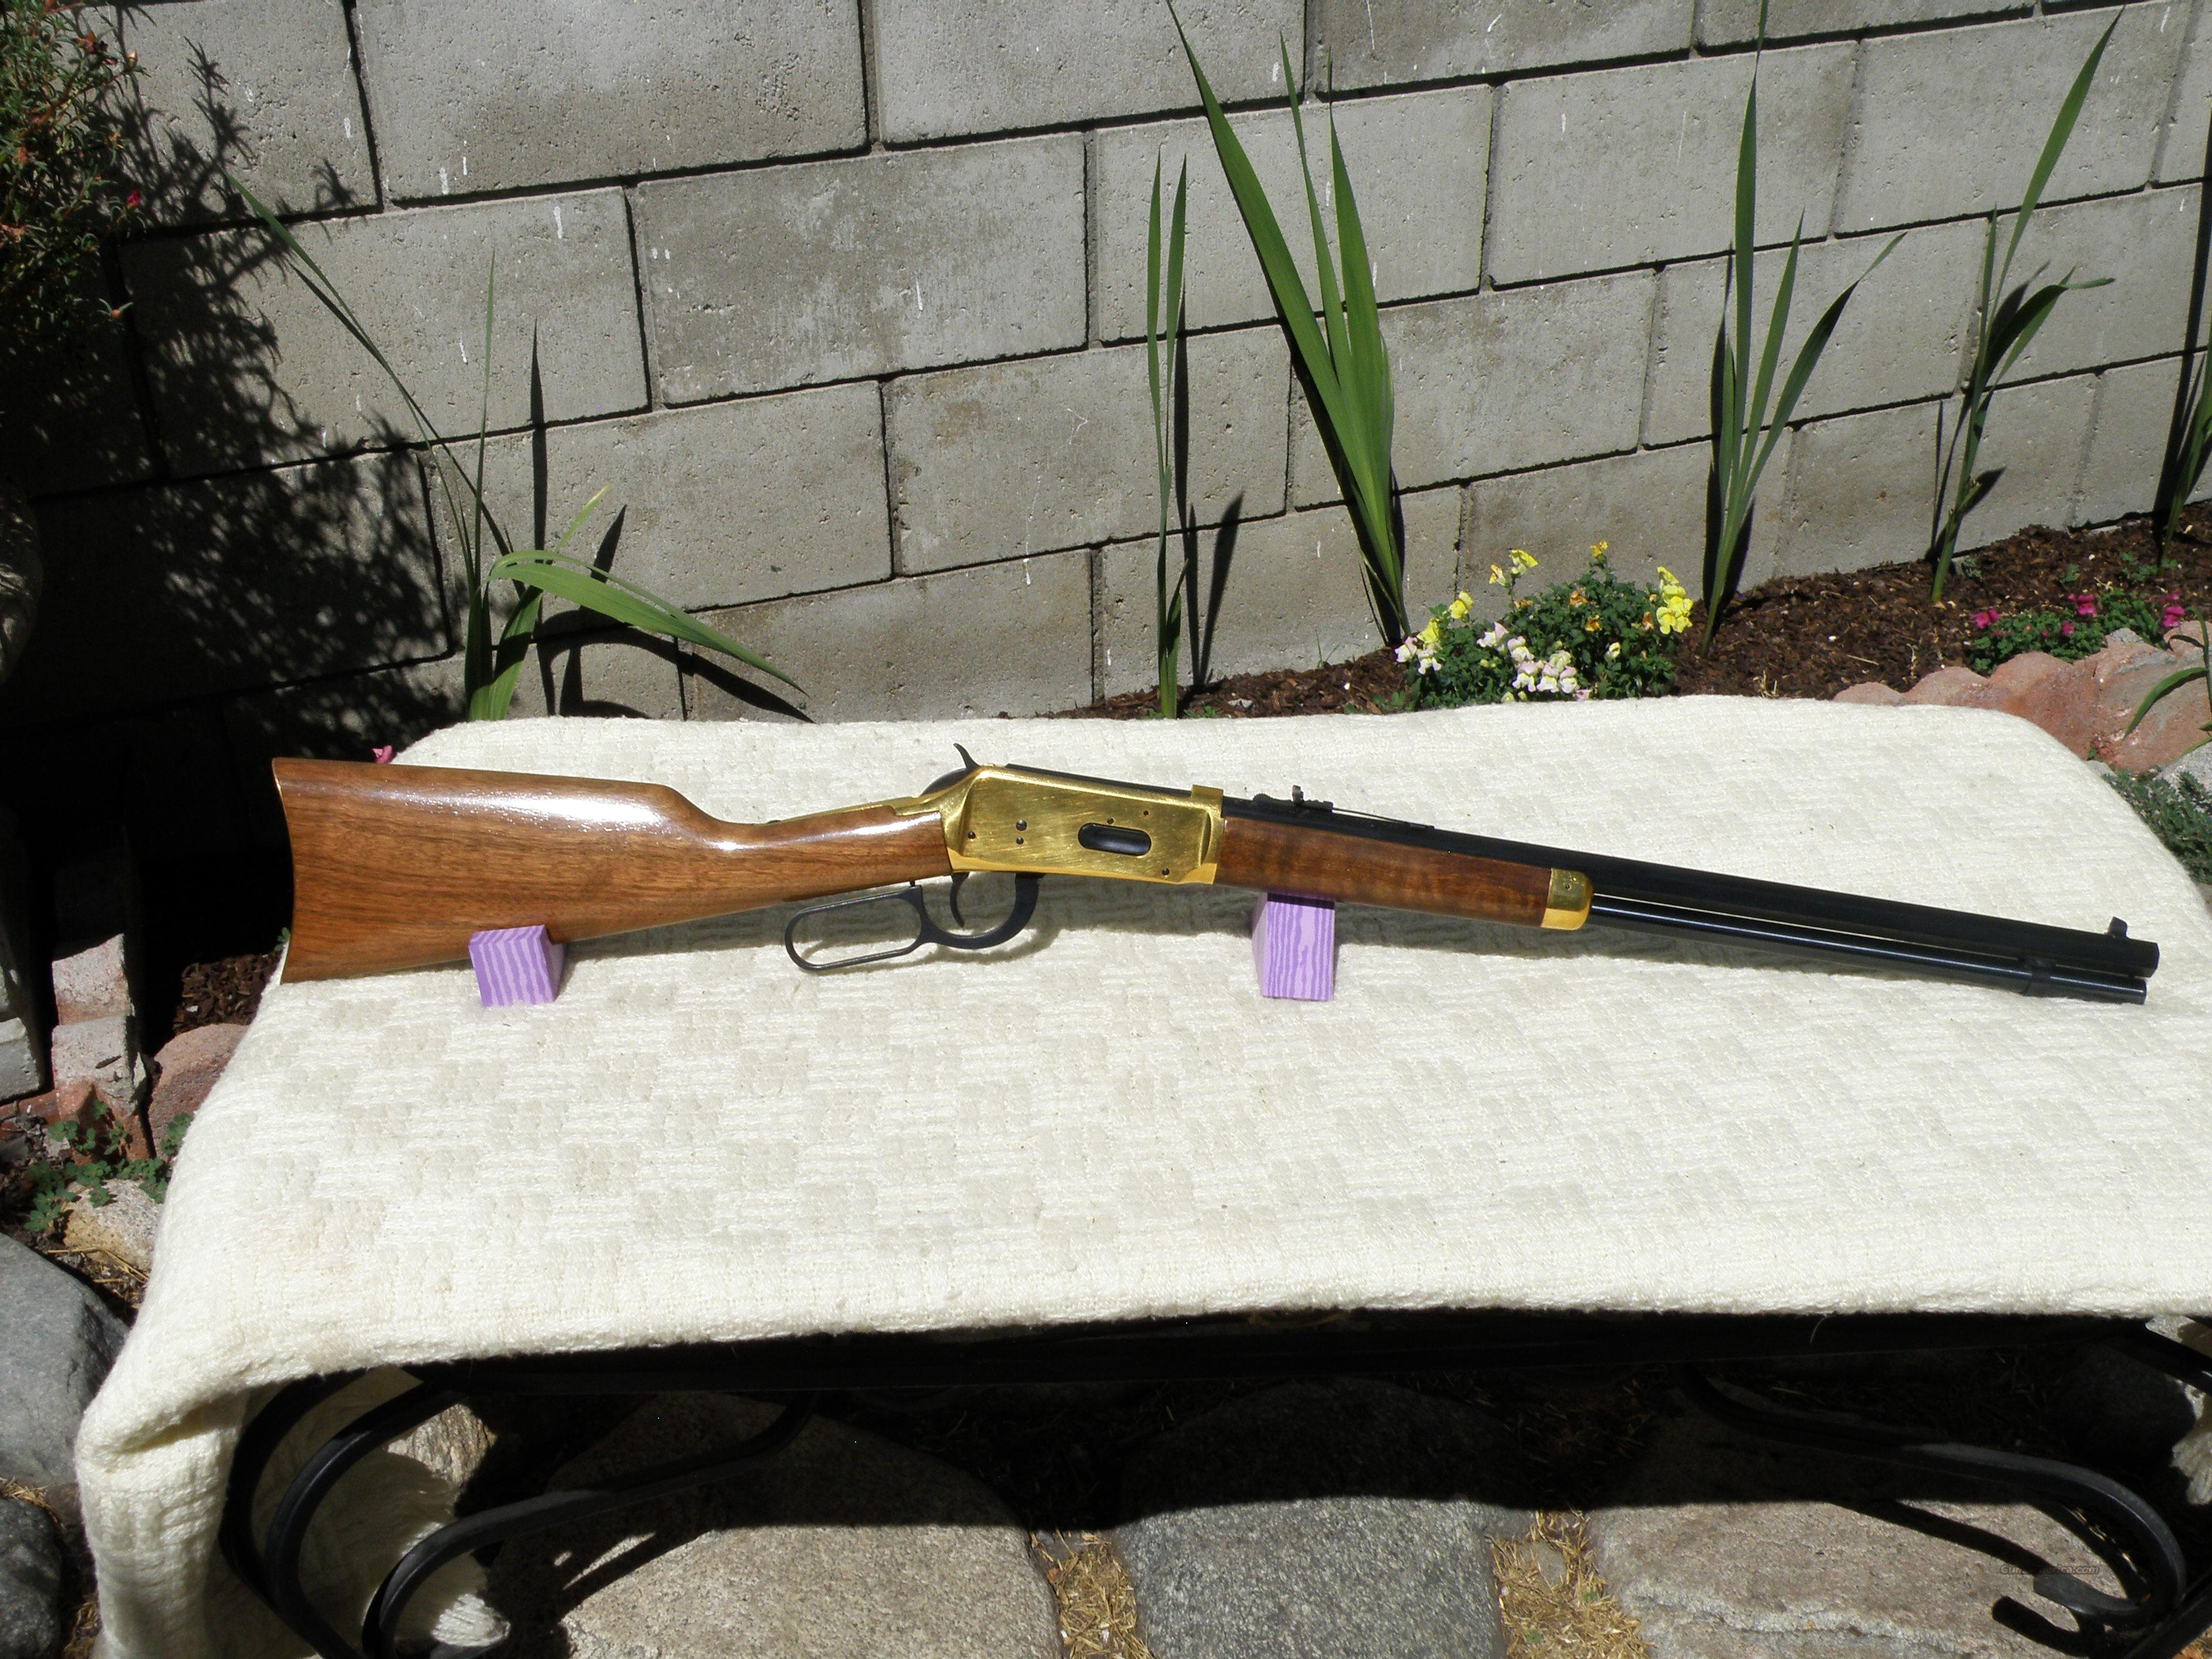 1966 Model 94 Centennial 66 Commemorative  Guns > Rifles > Winchester Rifle Commemoratives